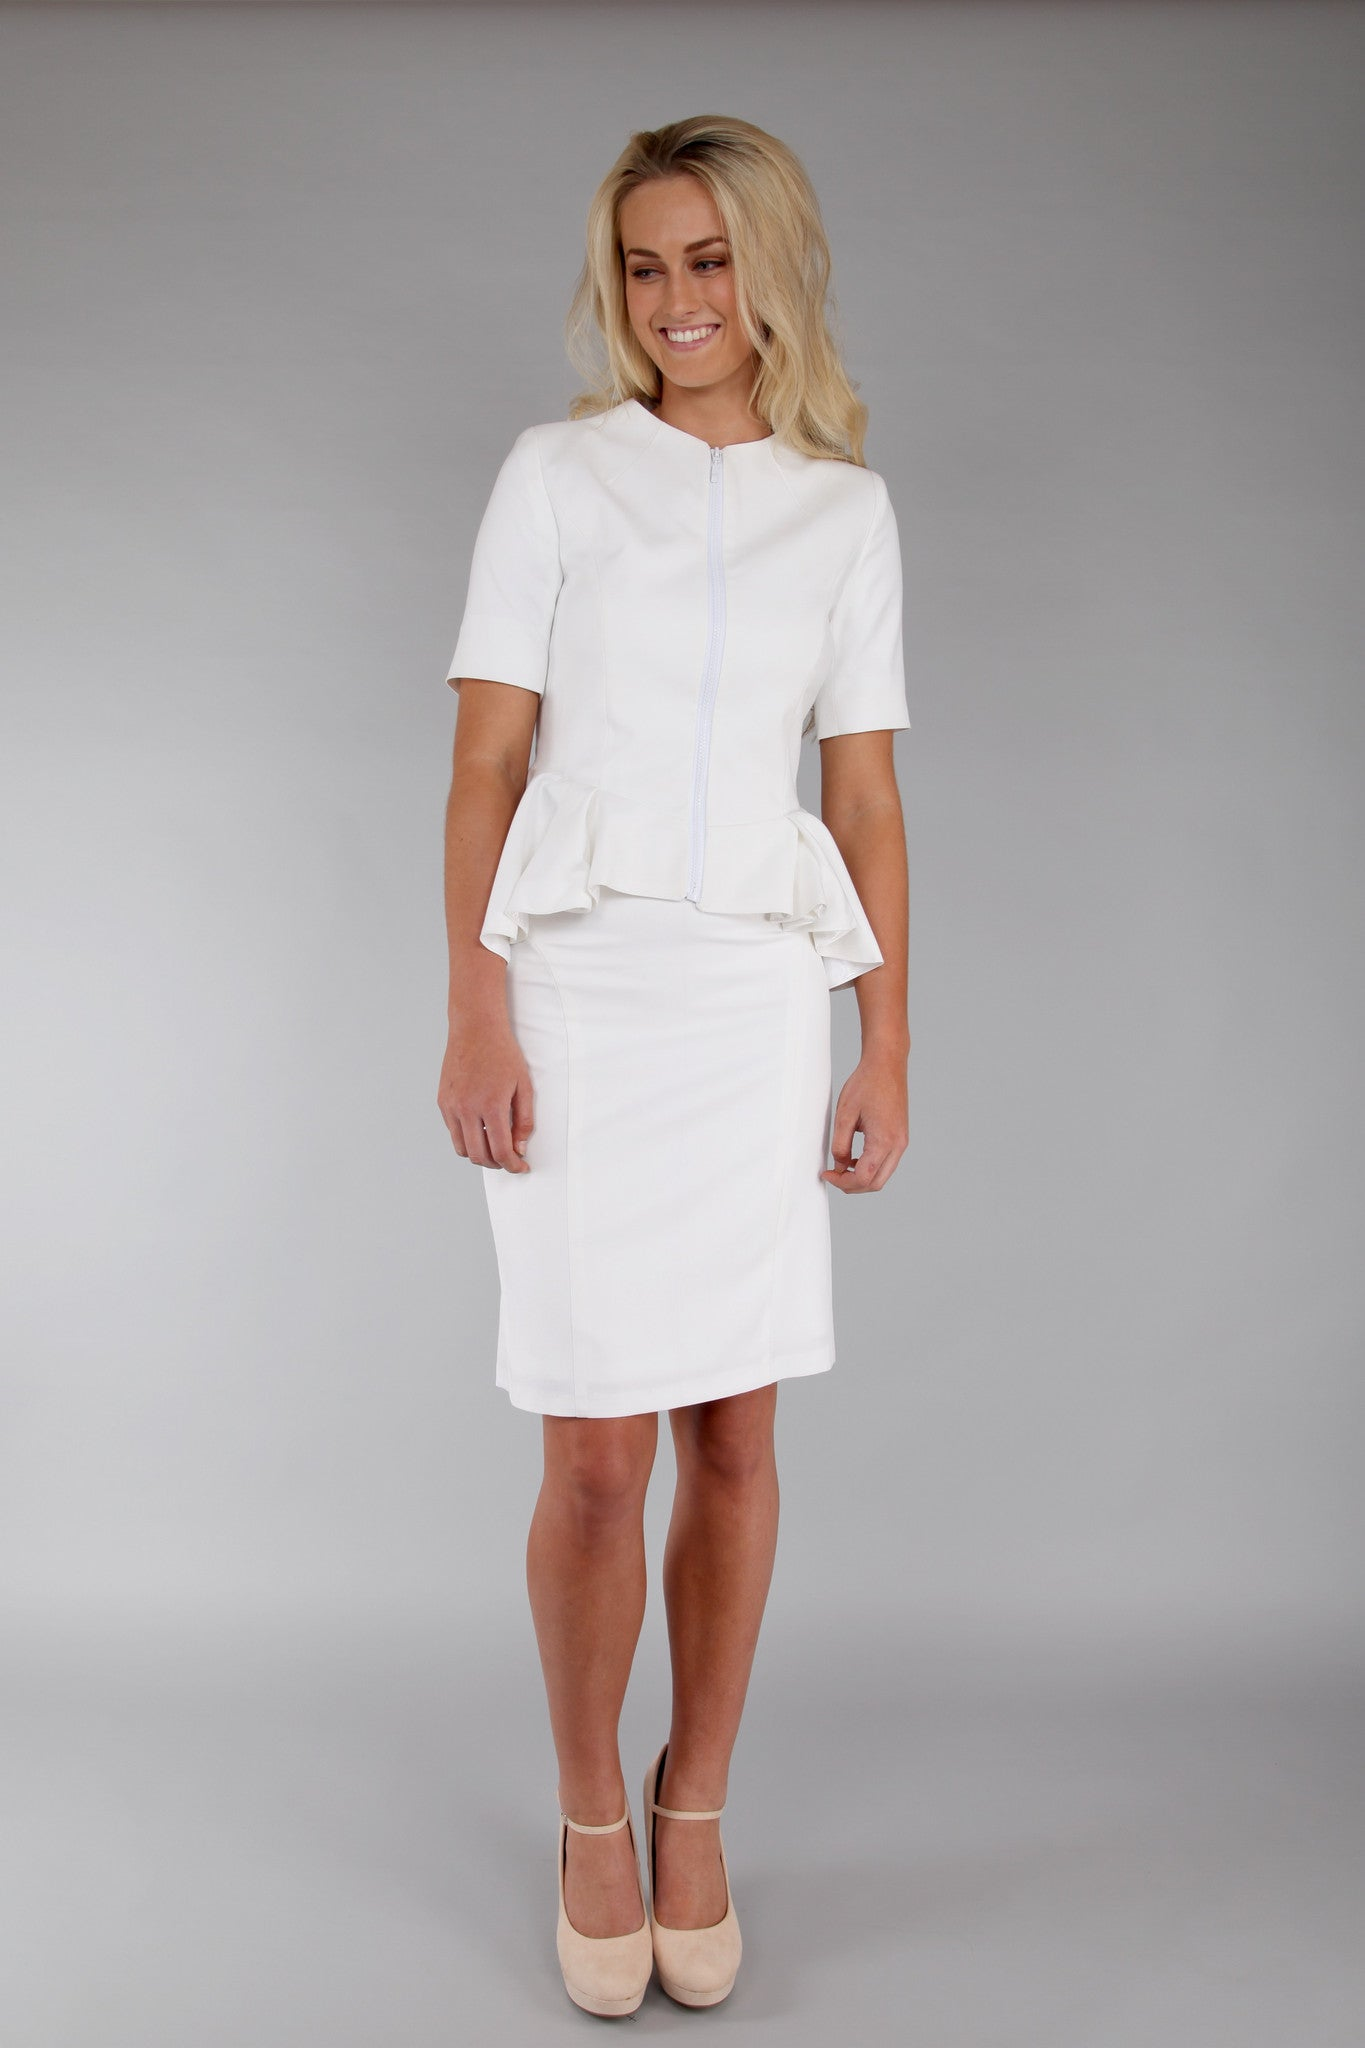 Civil Suit Skirt